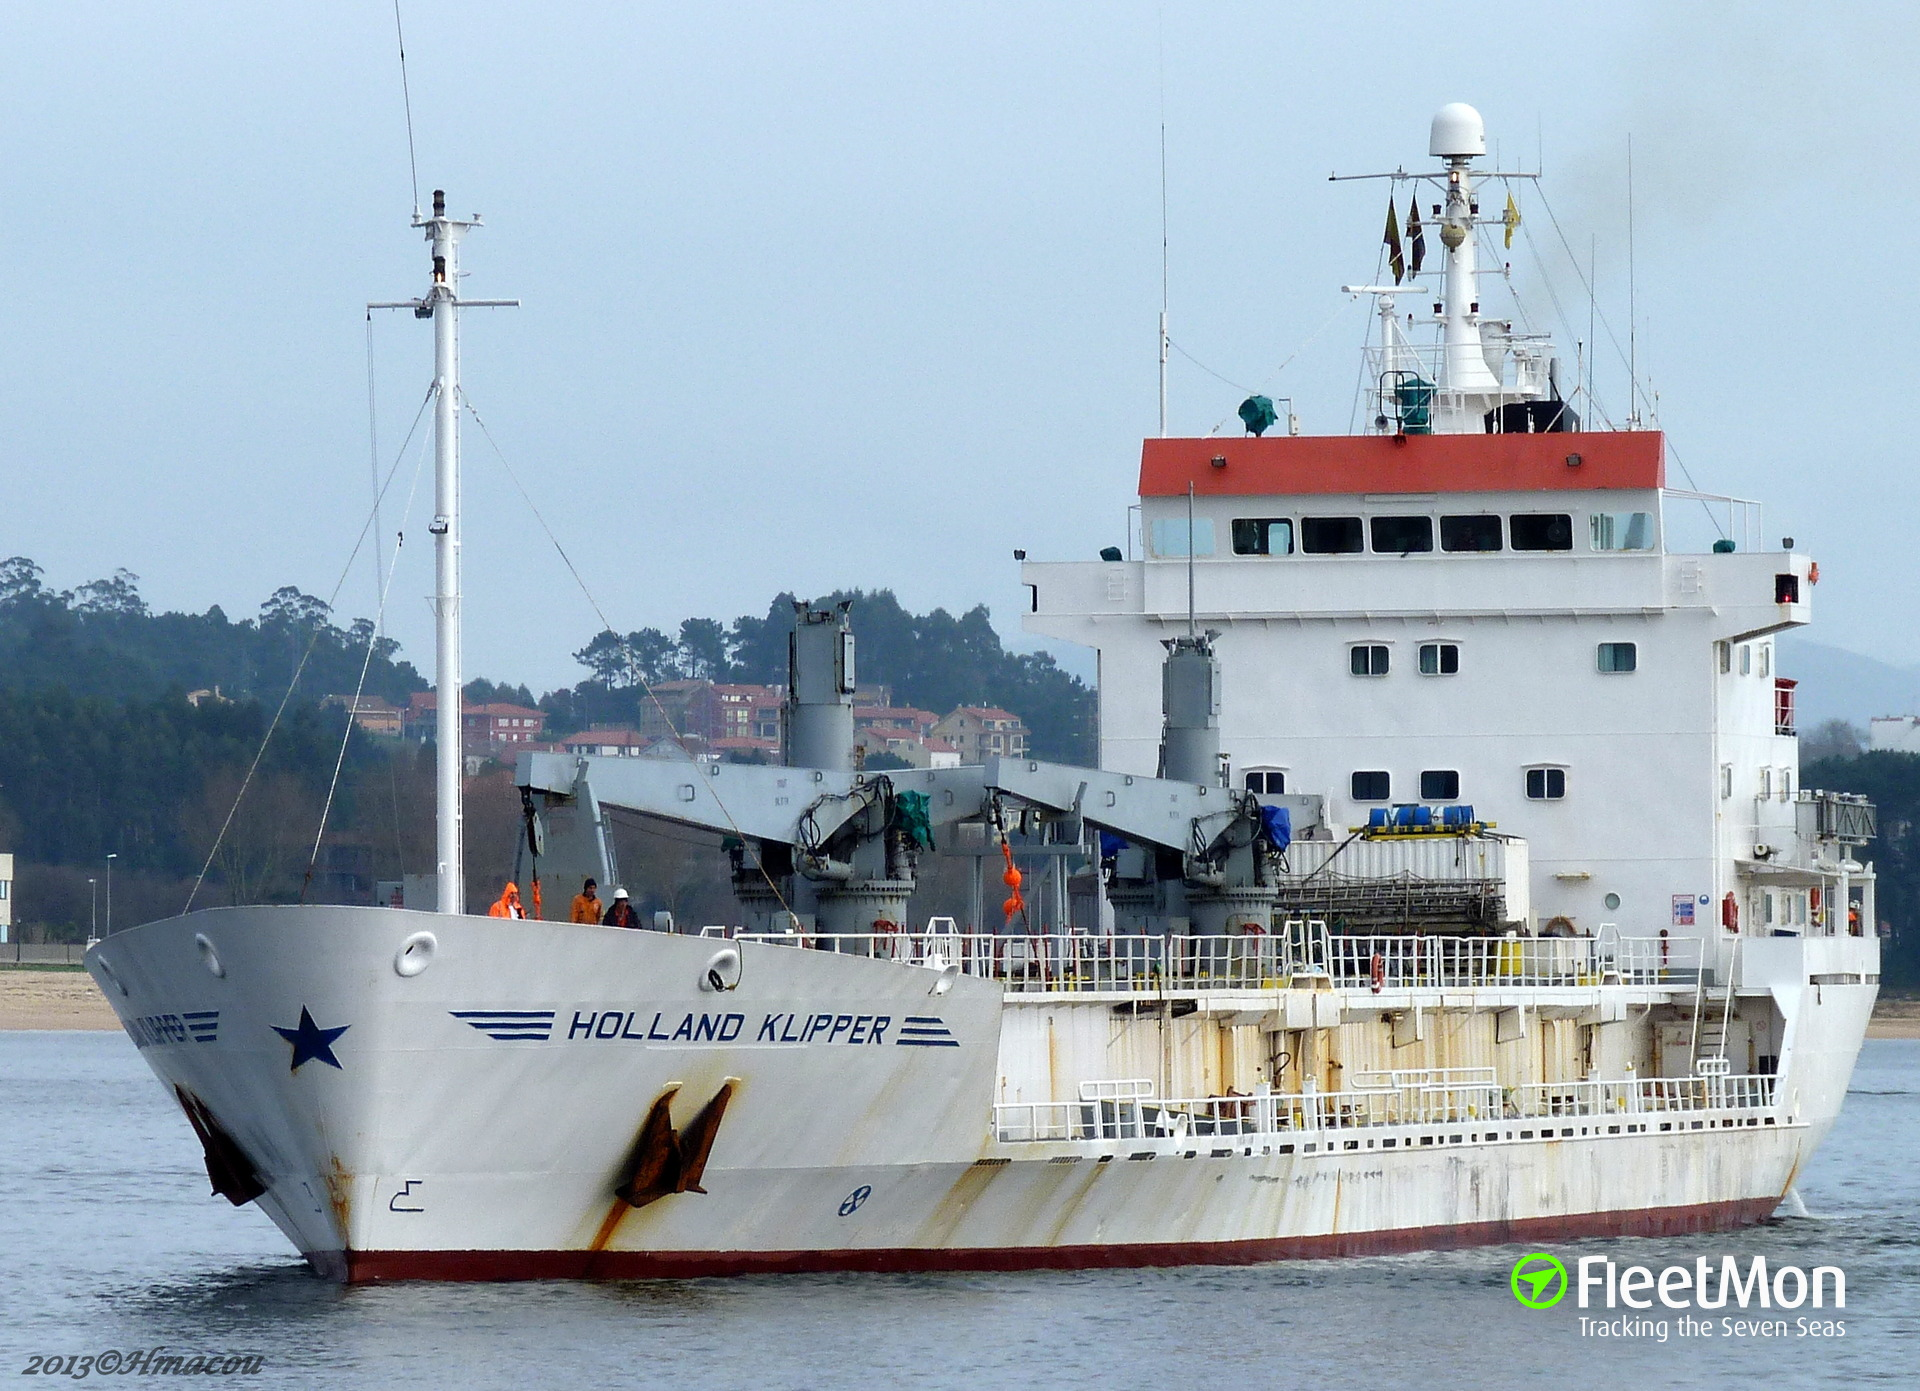 Dutch reefer Holland Klipper caught in illegal fishing scandal